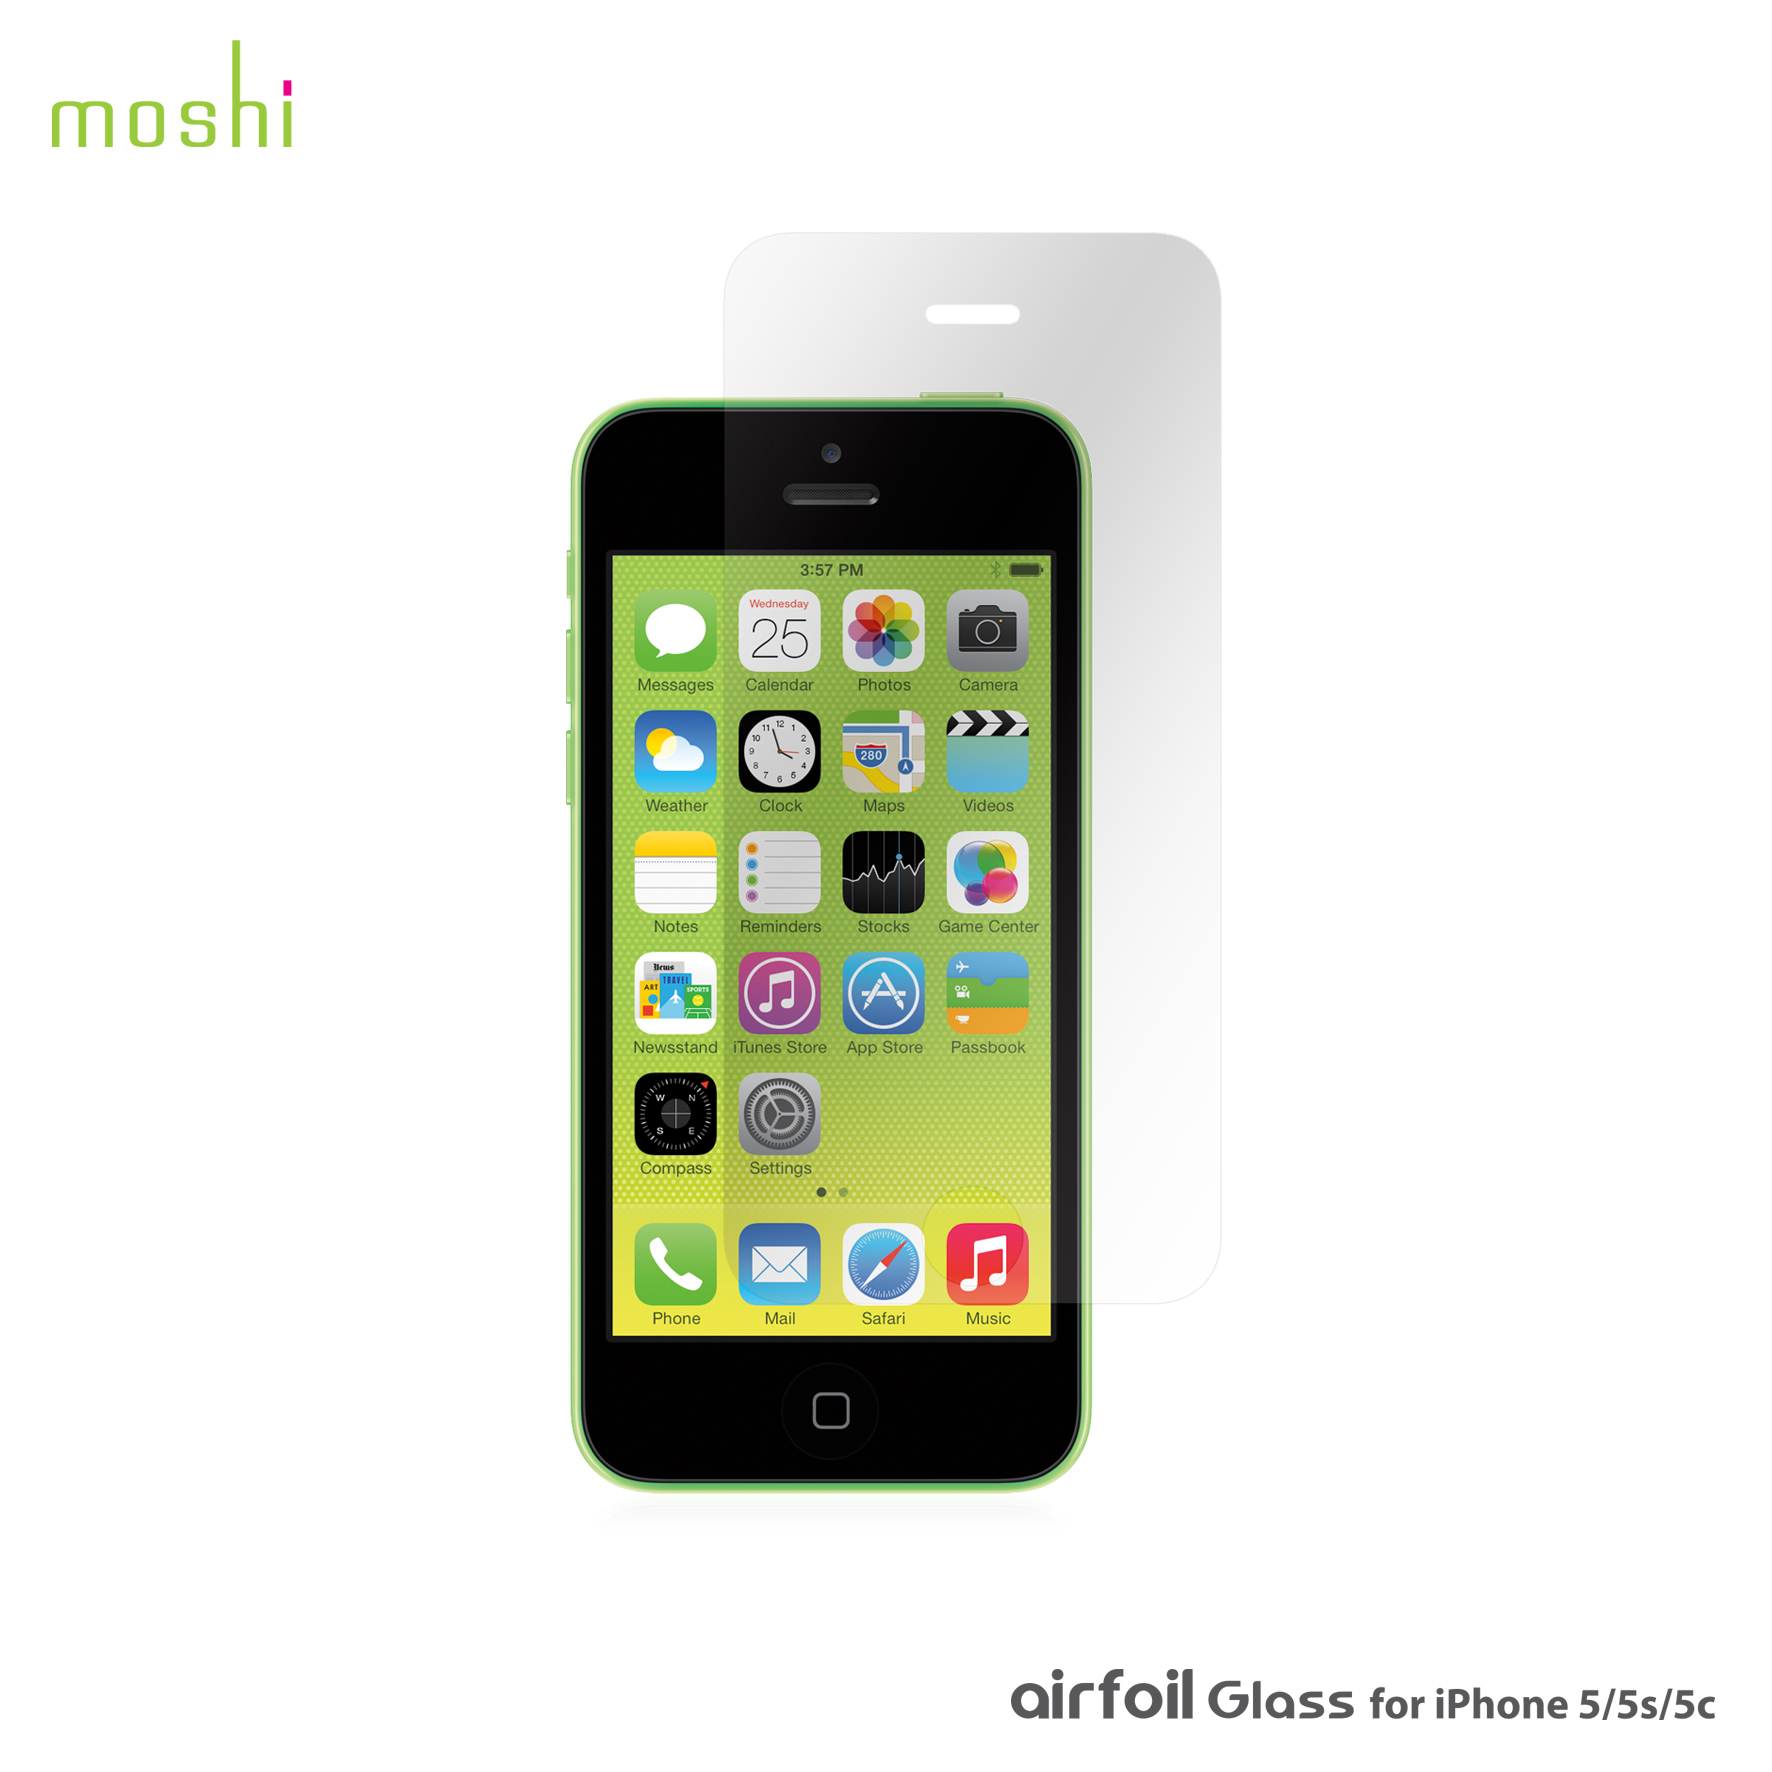 iphone 5 size